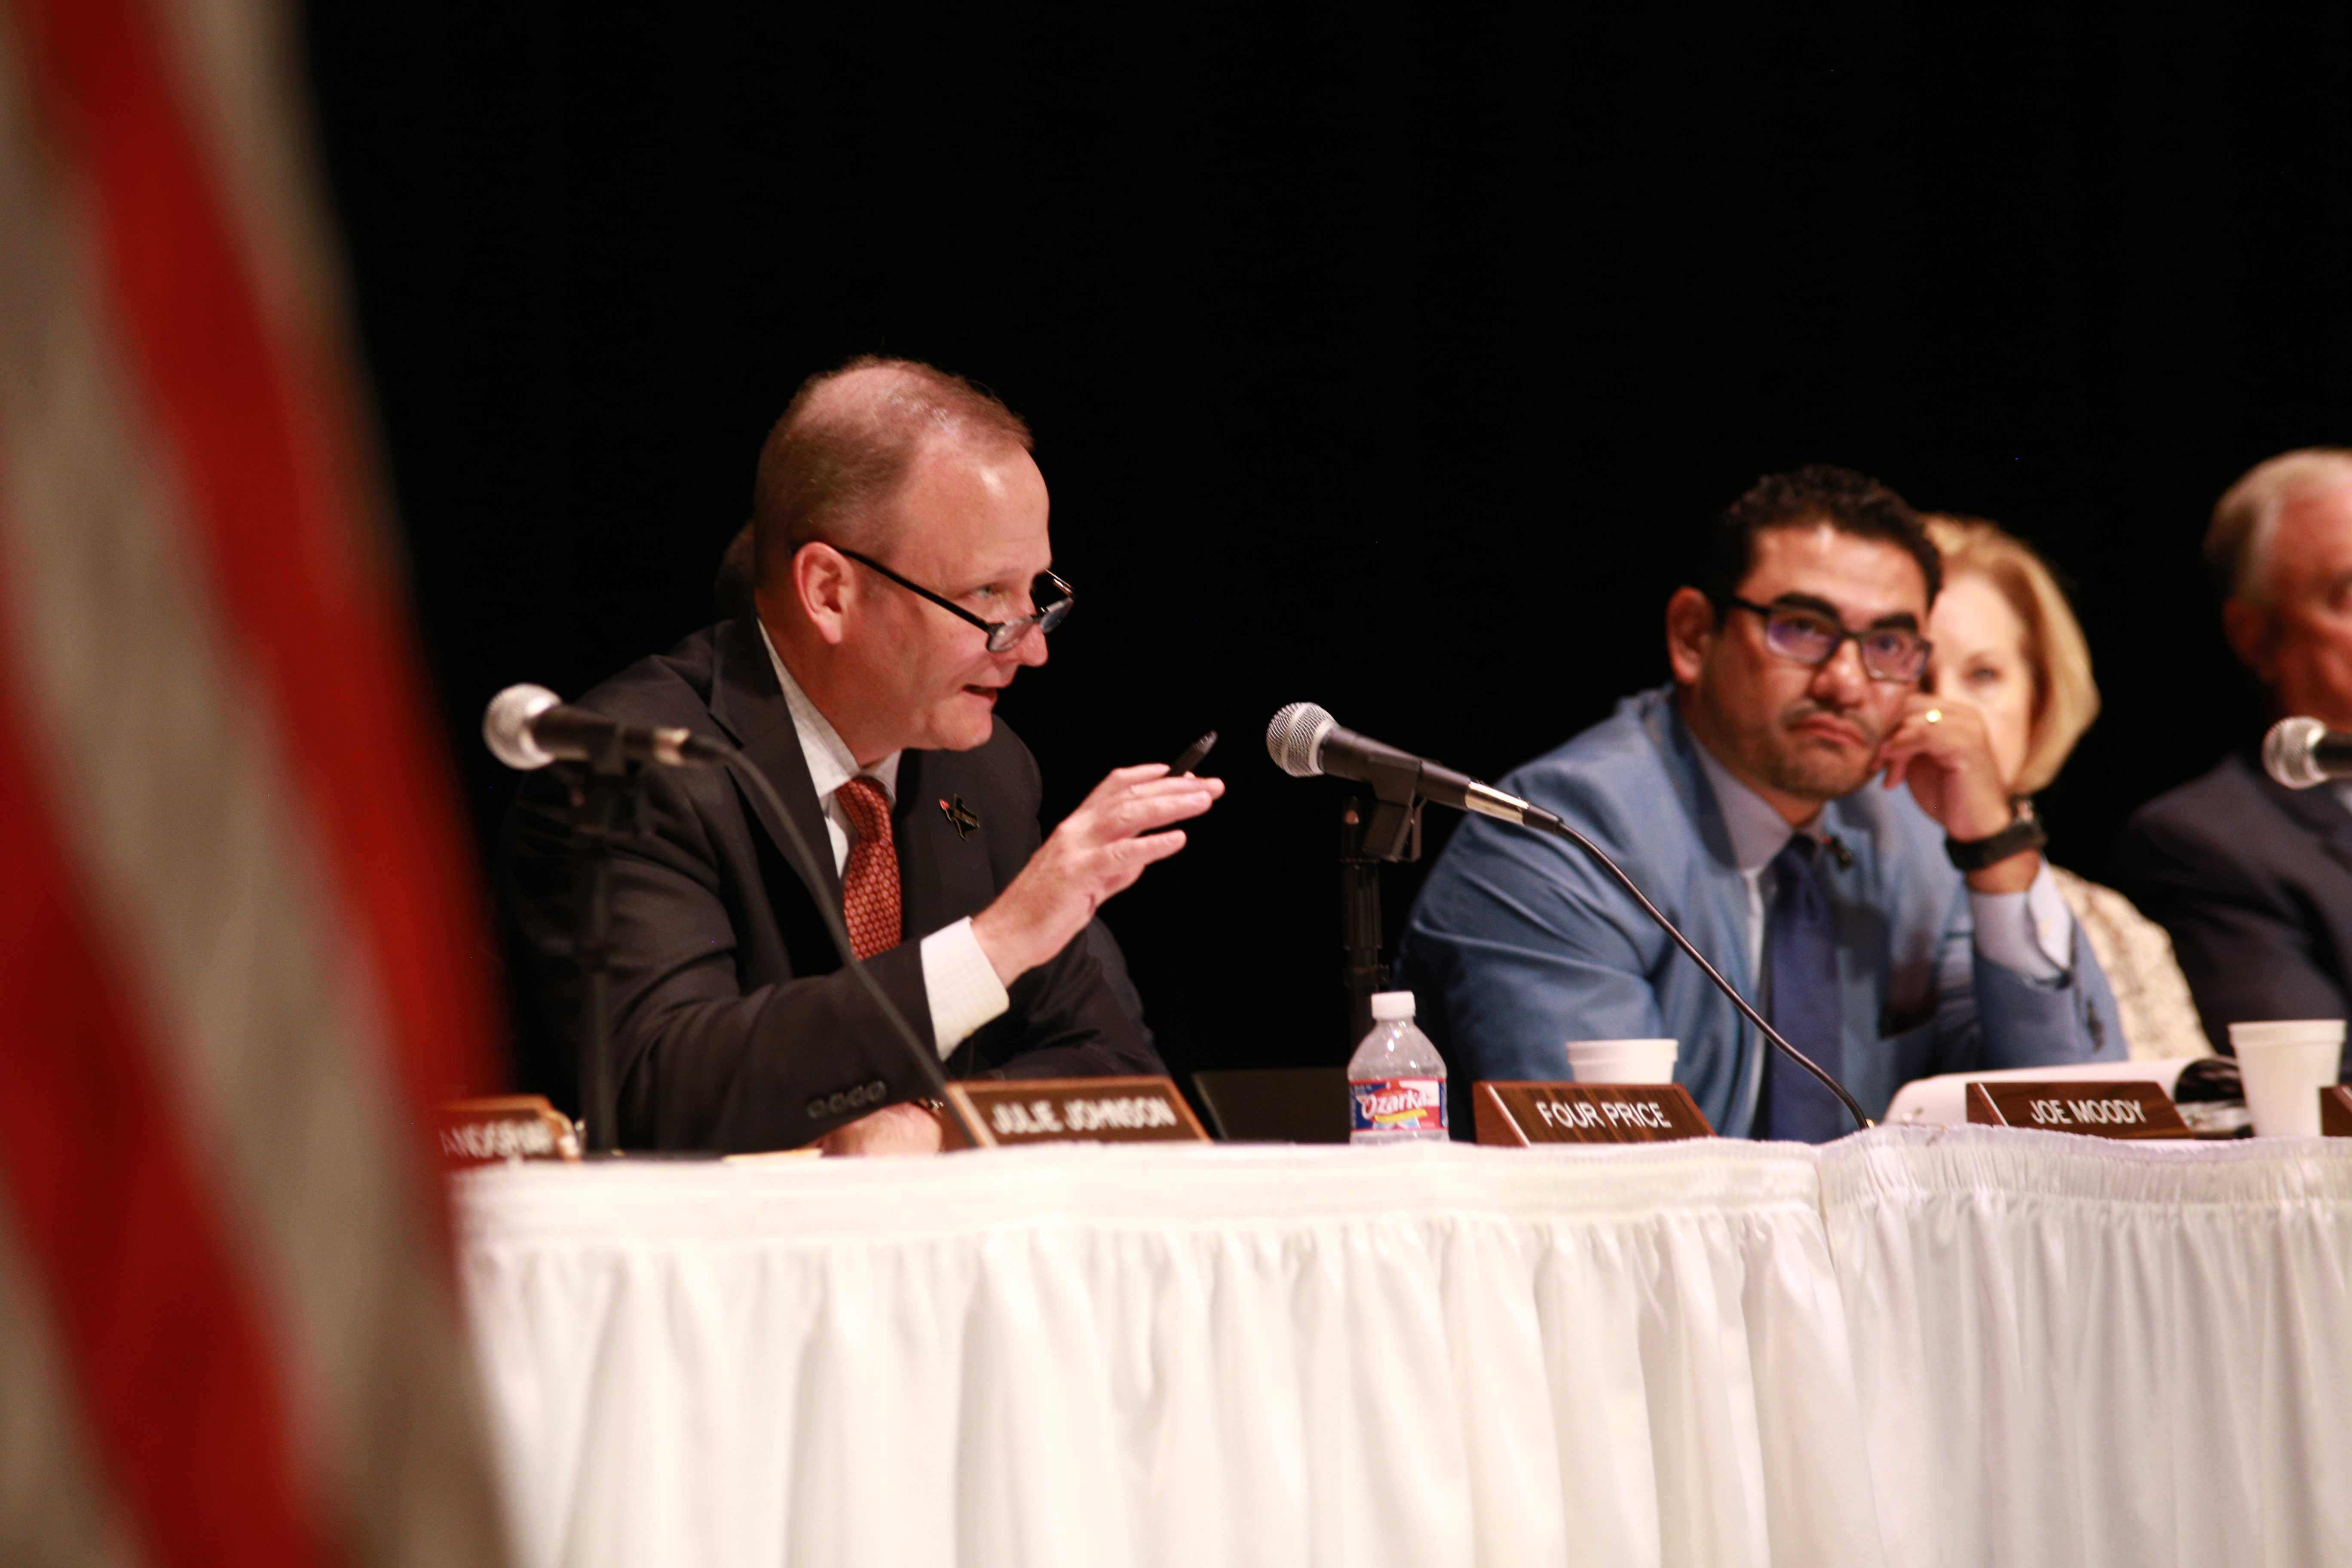 Photo by Jacob Vaughn | Rep. Four Price, a member of The Texas House Committee on Mass Violence Prevention and Community Safety addresses a panel during a hearing Oct. 10 at Brookhaven College.